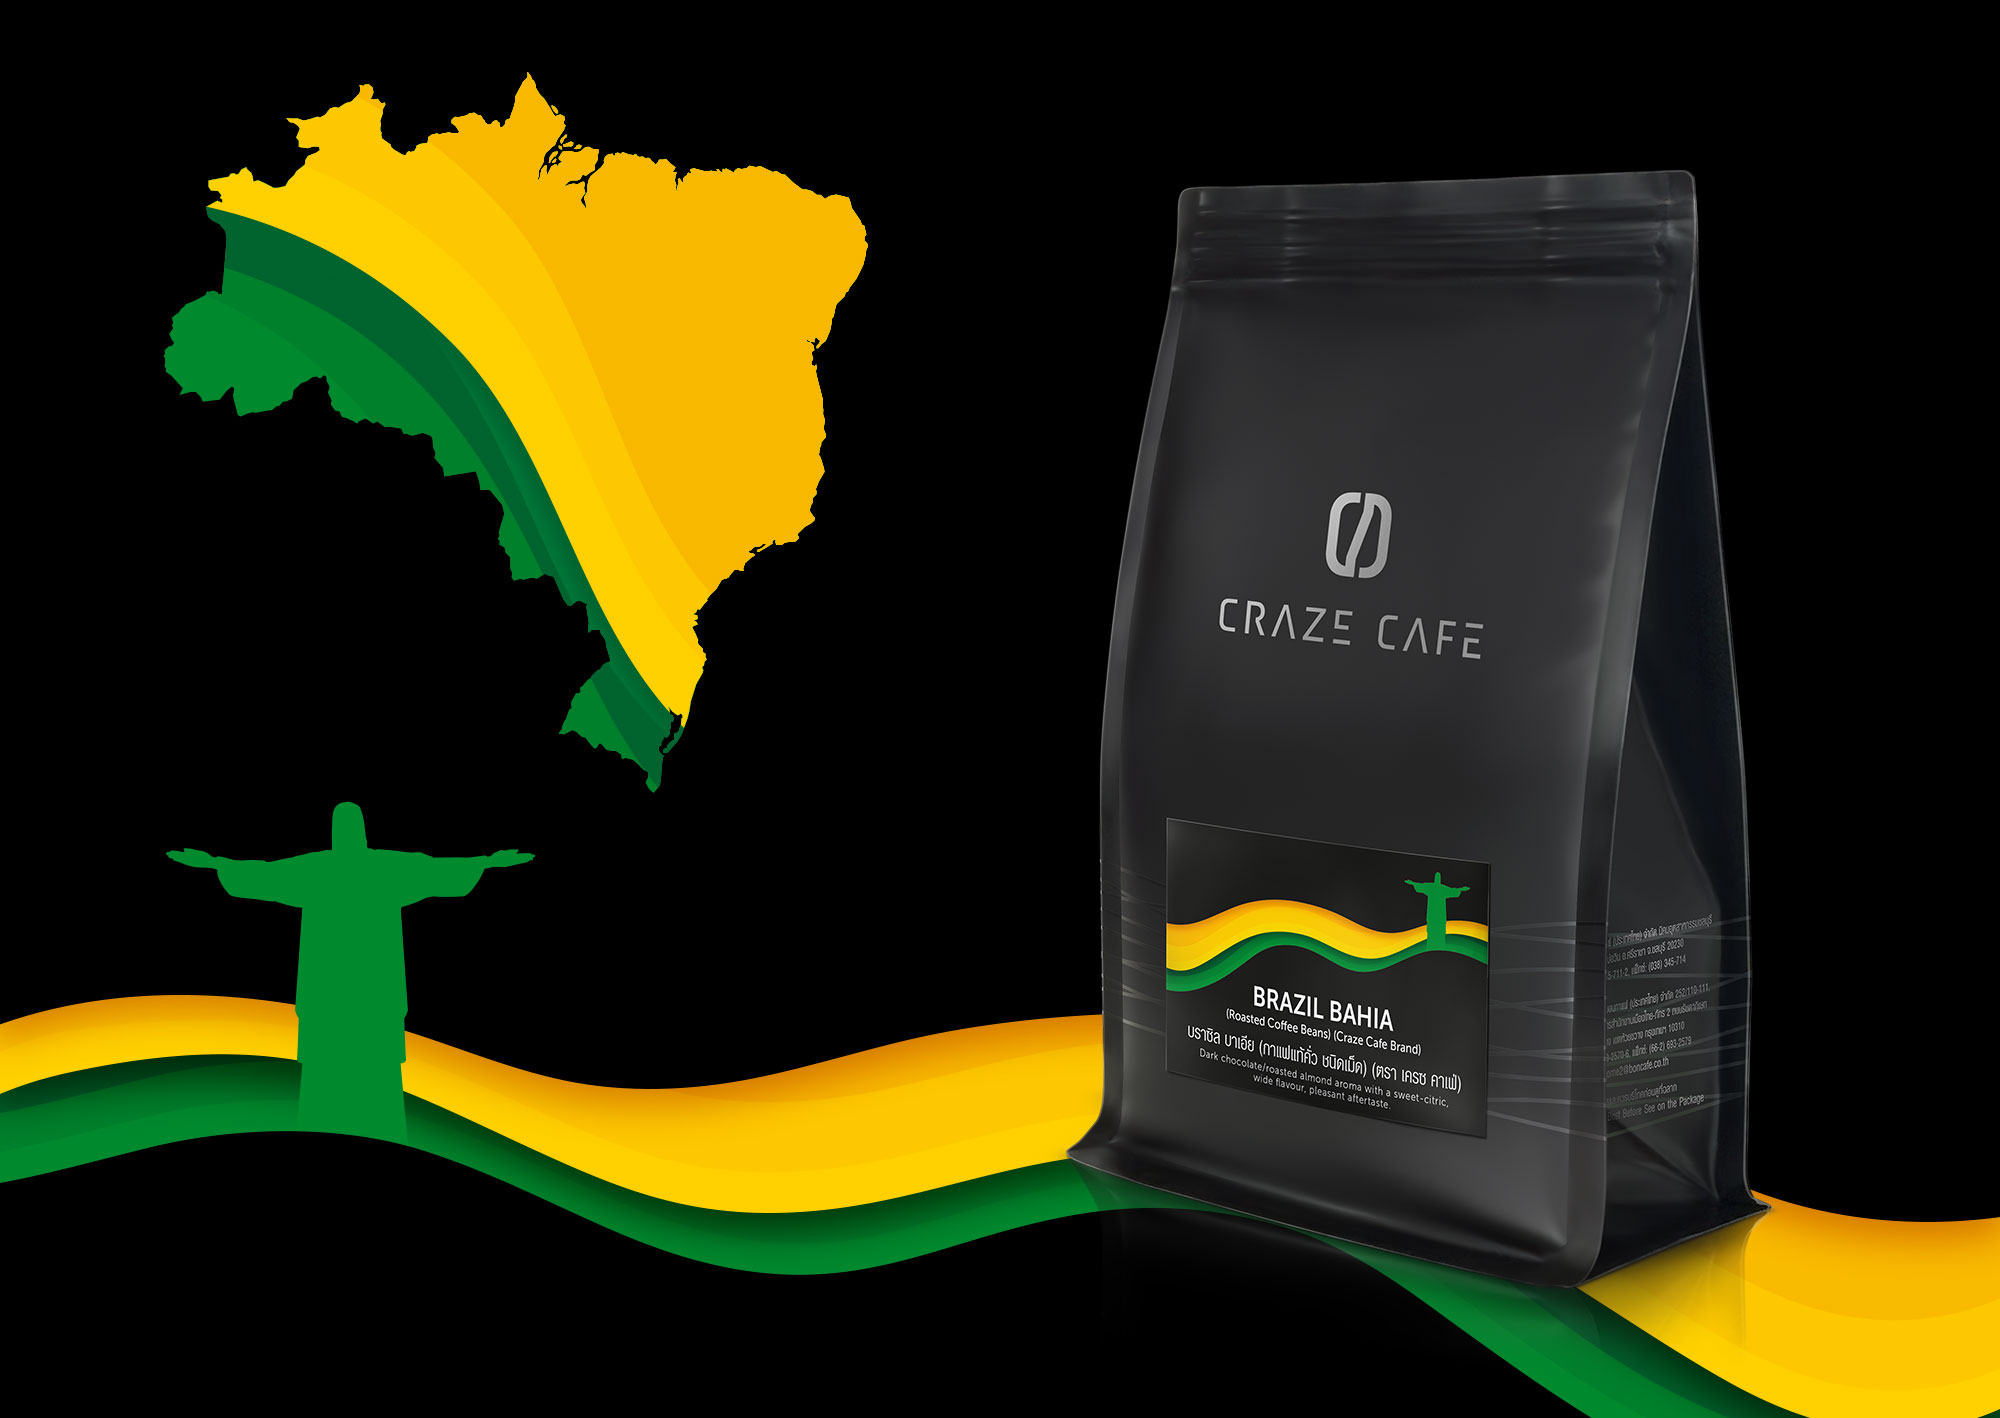 Craze Cafe Brazilian Coffee Packaging